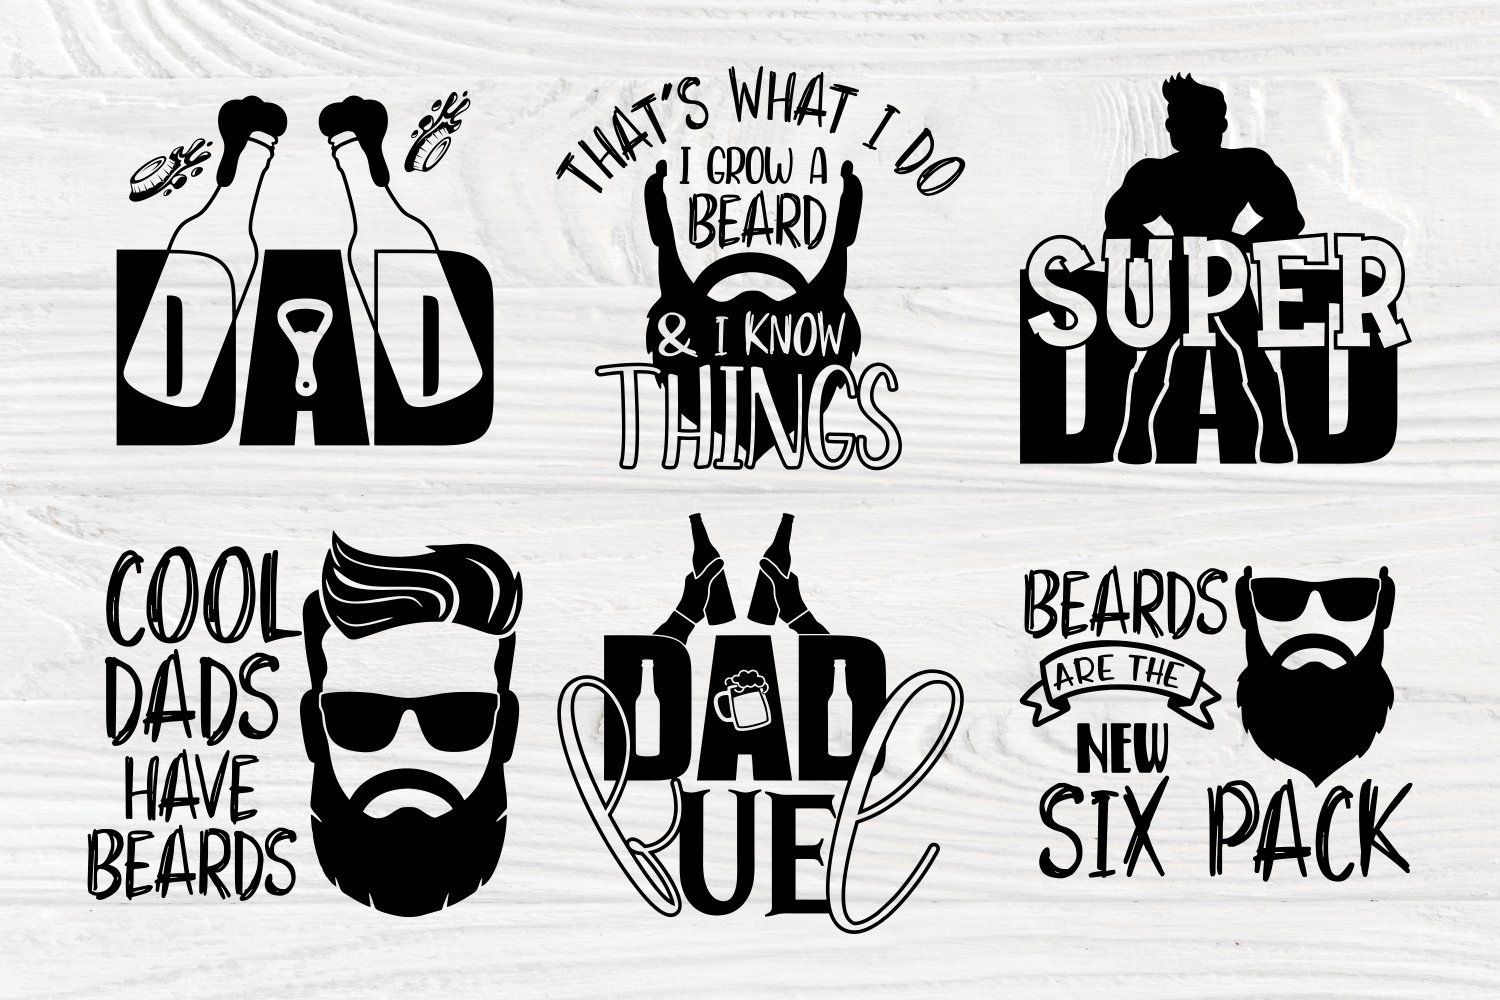 Free Whether you go funny or heartfelt, these thoughtful cards will definitely a star wars reference is mandatory on father's day, and this one will definitely earn you brownie points. Fathers Day Svg Beard Svg Dad Signs Beer Svg Bbq Svg 590821 Cut Files Design Bundles SVG, PNG, EPS, DXF File